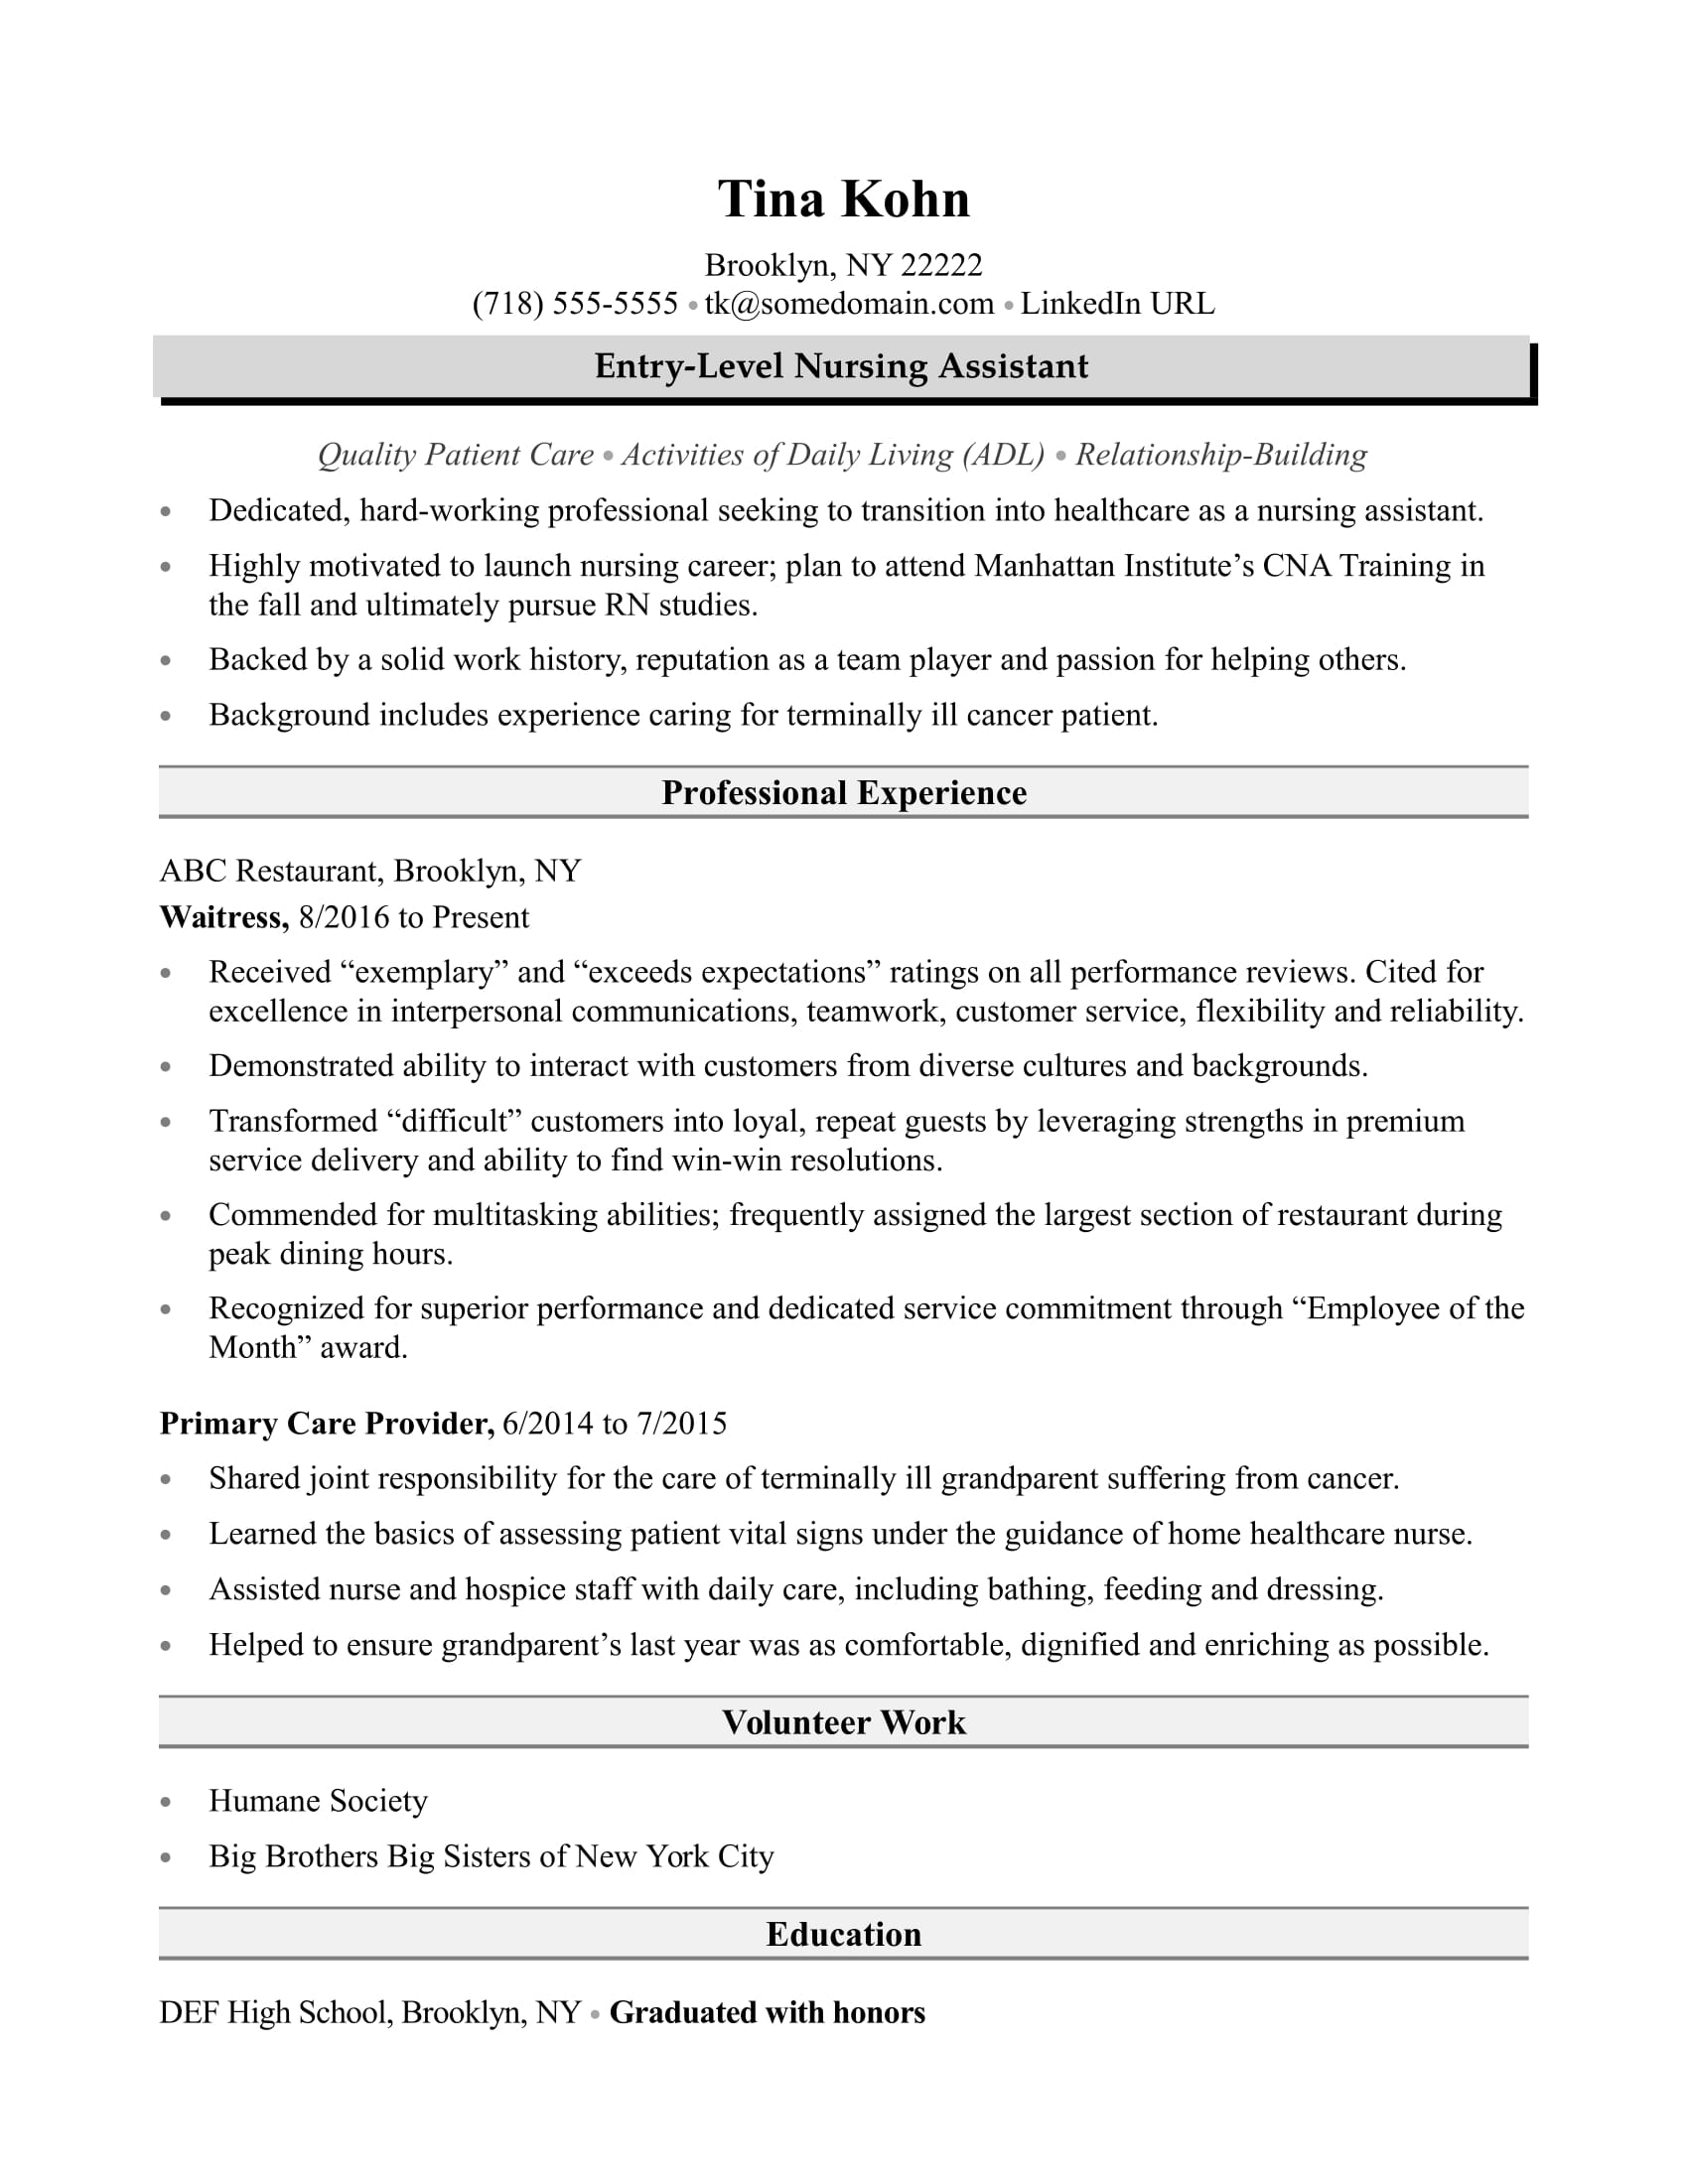 nursing assistant resume sample - Cna Resume Sample